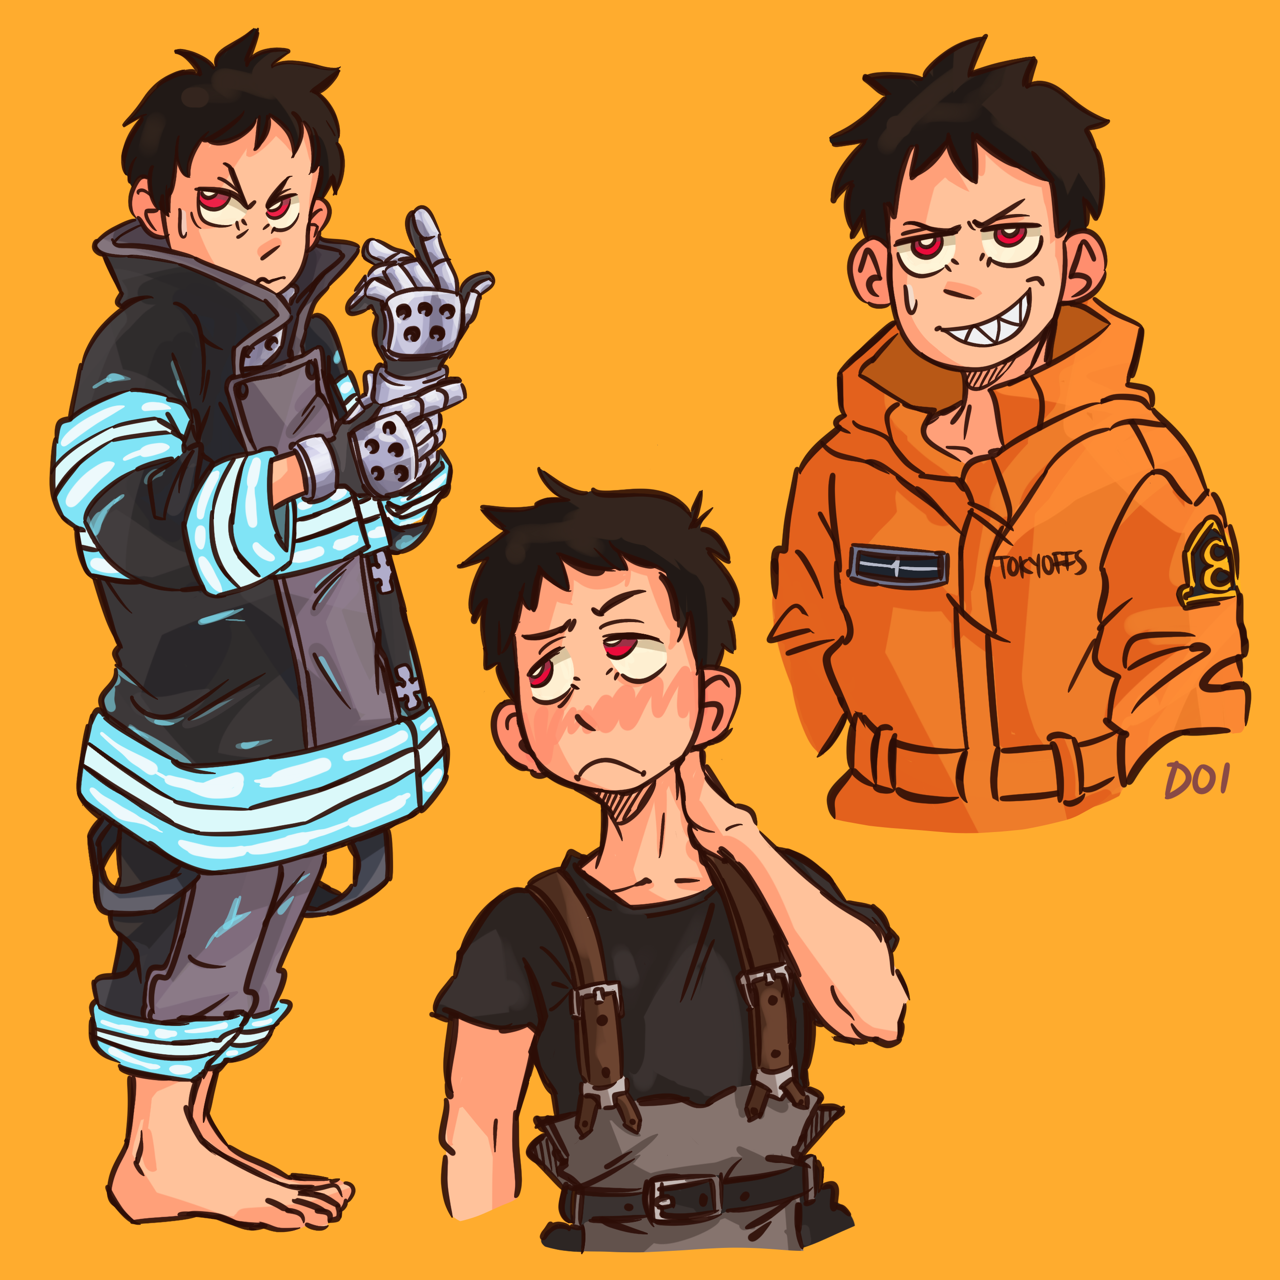 Pin by Kaitlynn Marshall on Fire Force Shinra kusakabe